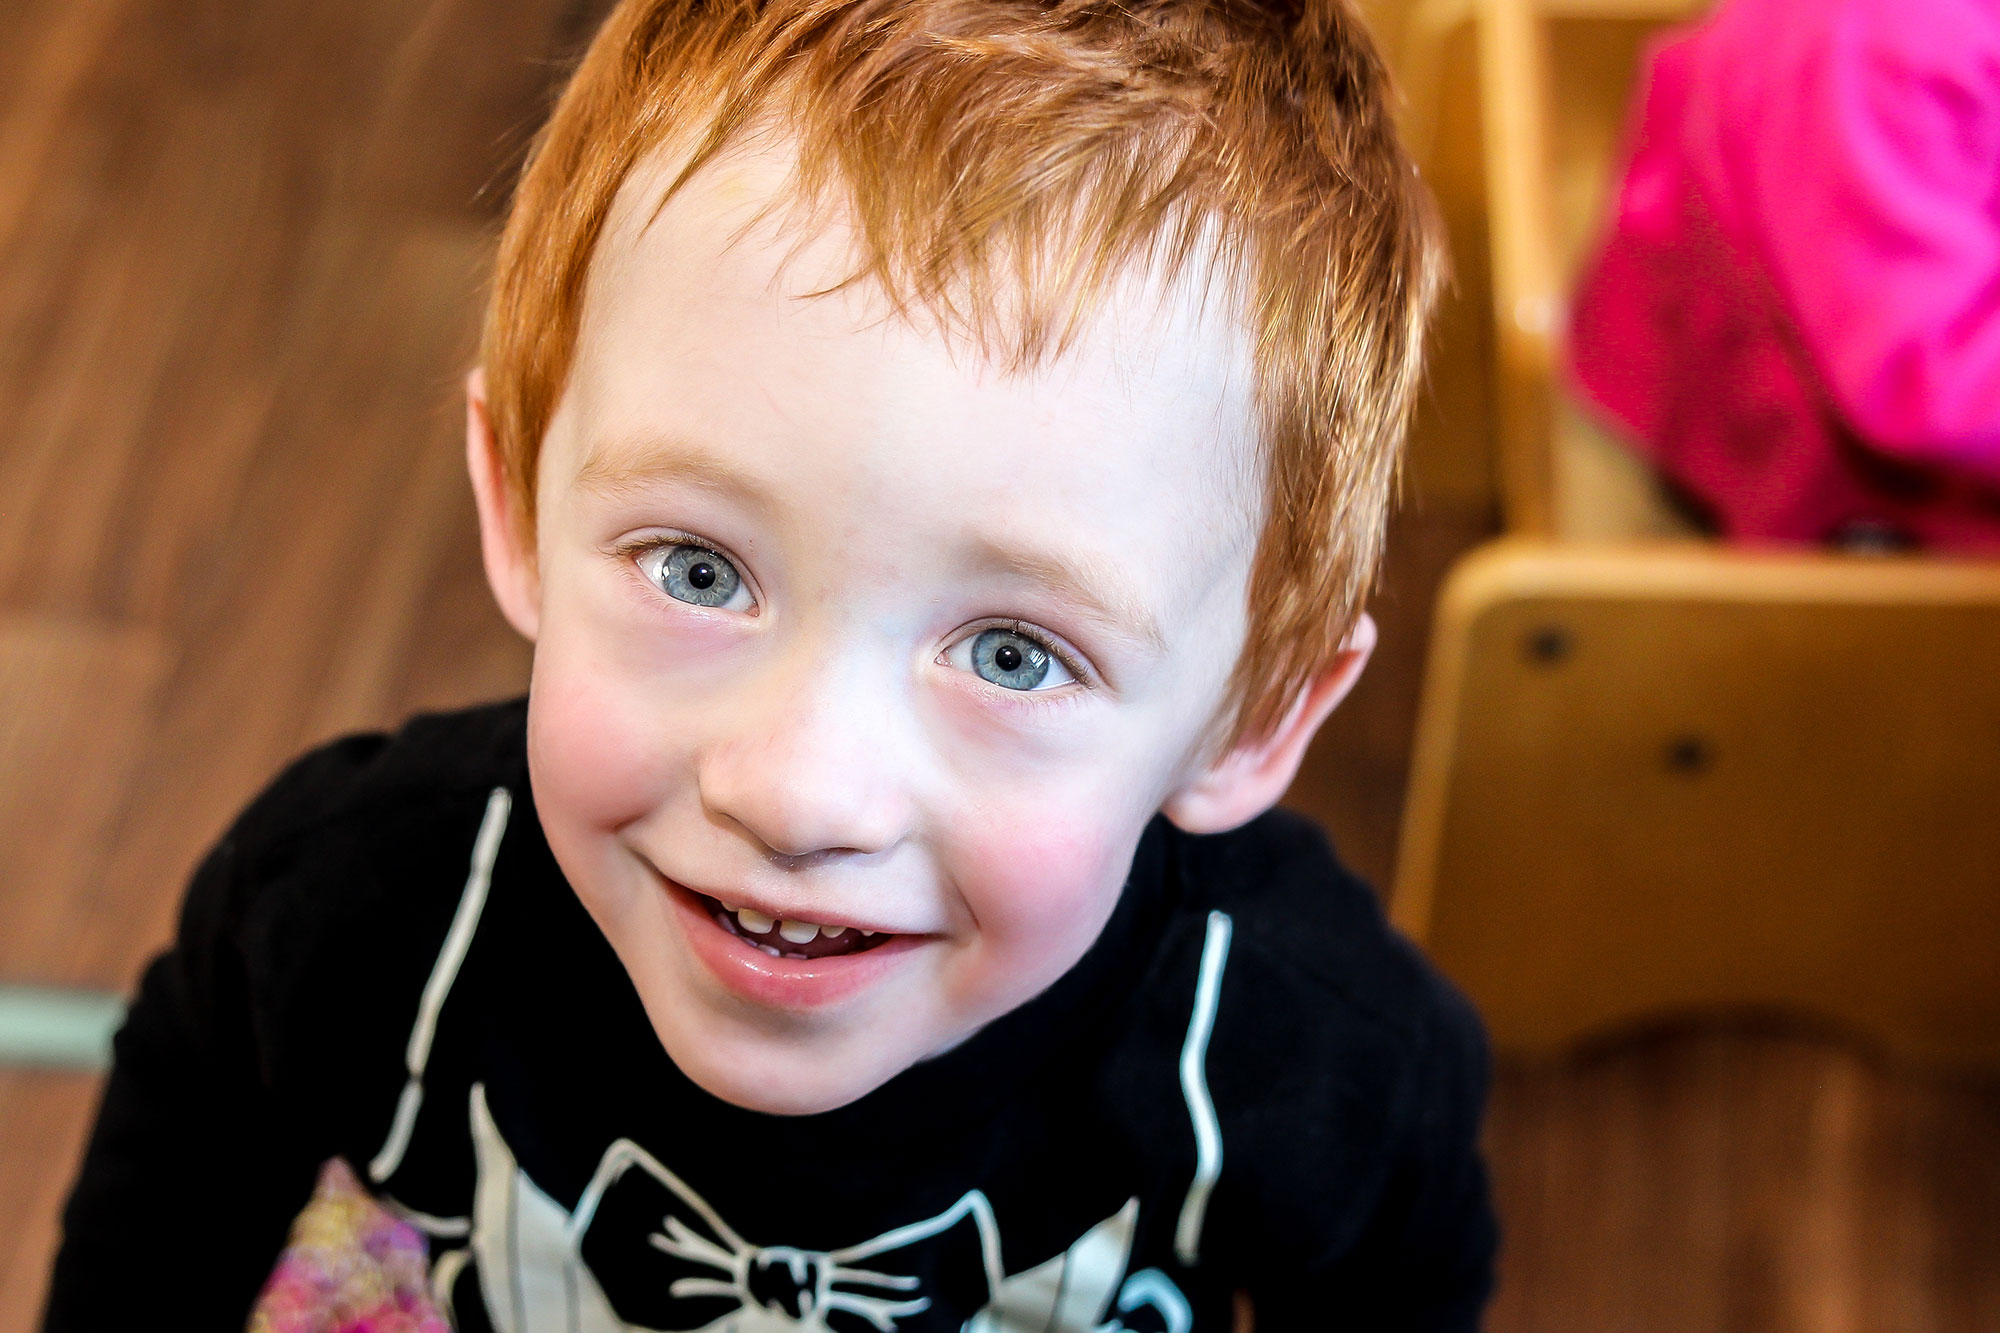 Red-headed little boy smiling at camera